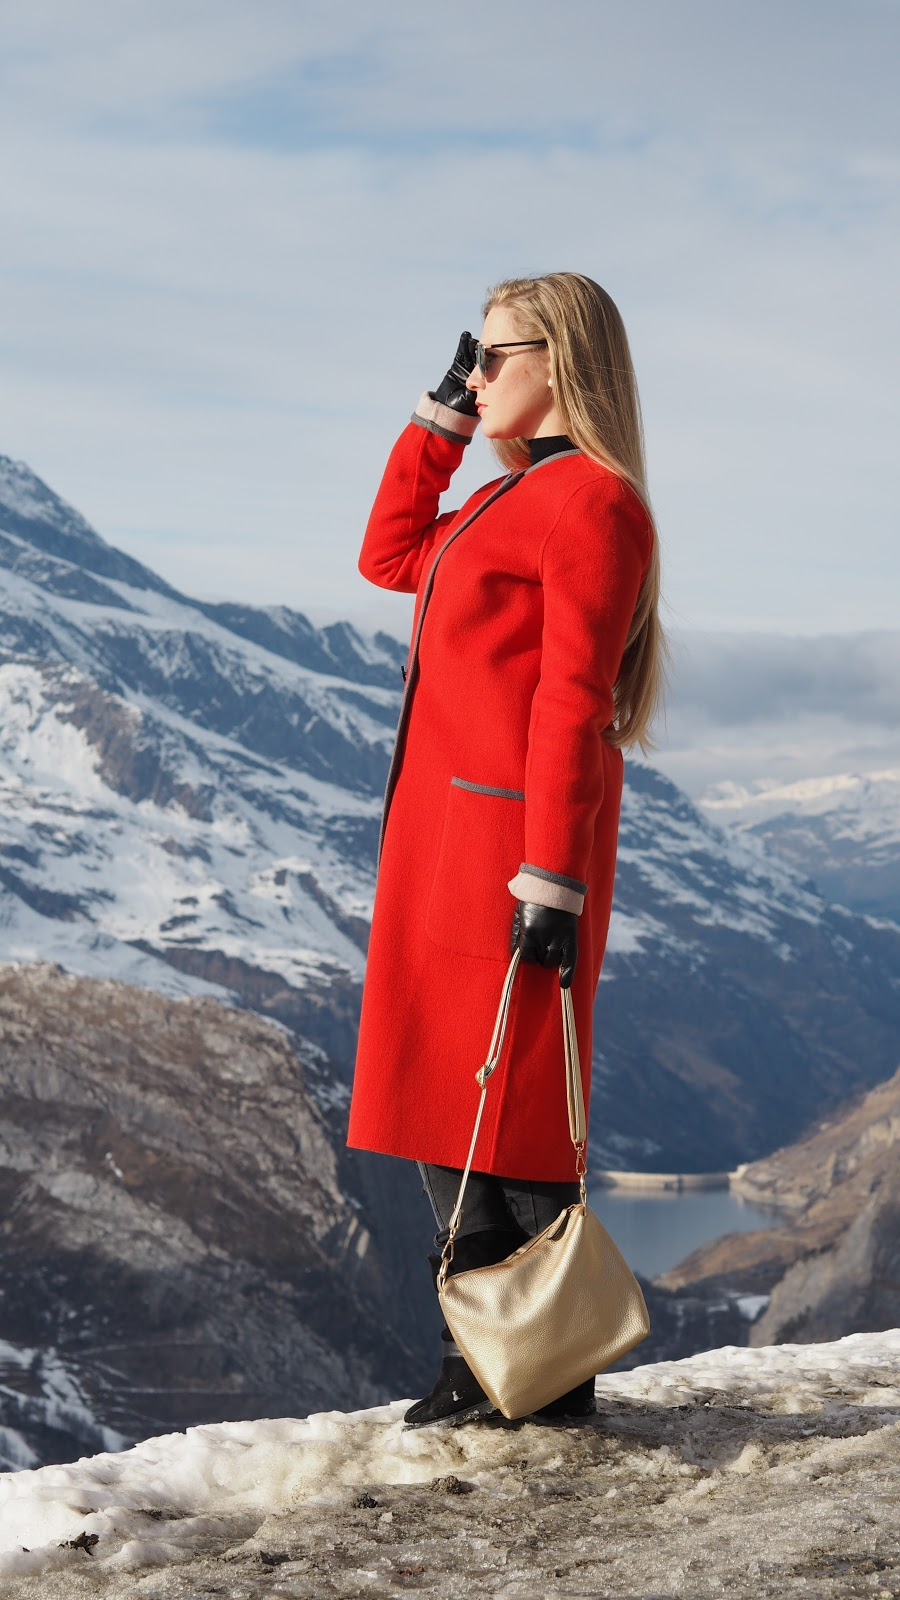 Blonde Girl wearing red coat in the Snow Capped Mountains, Val d'Isere, France